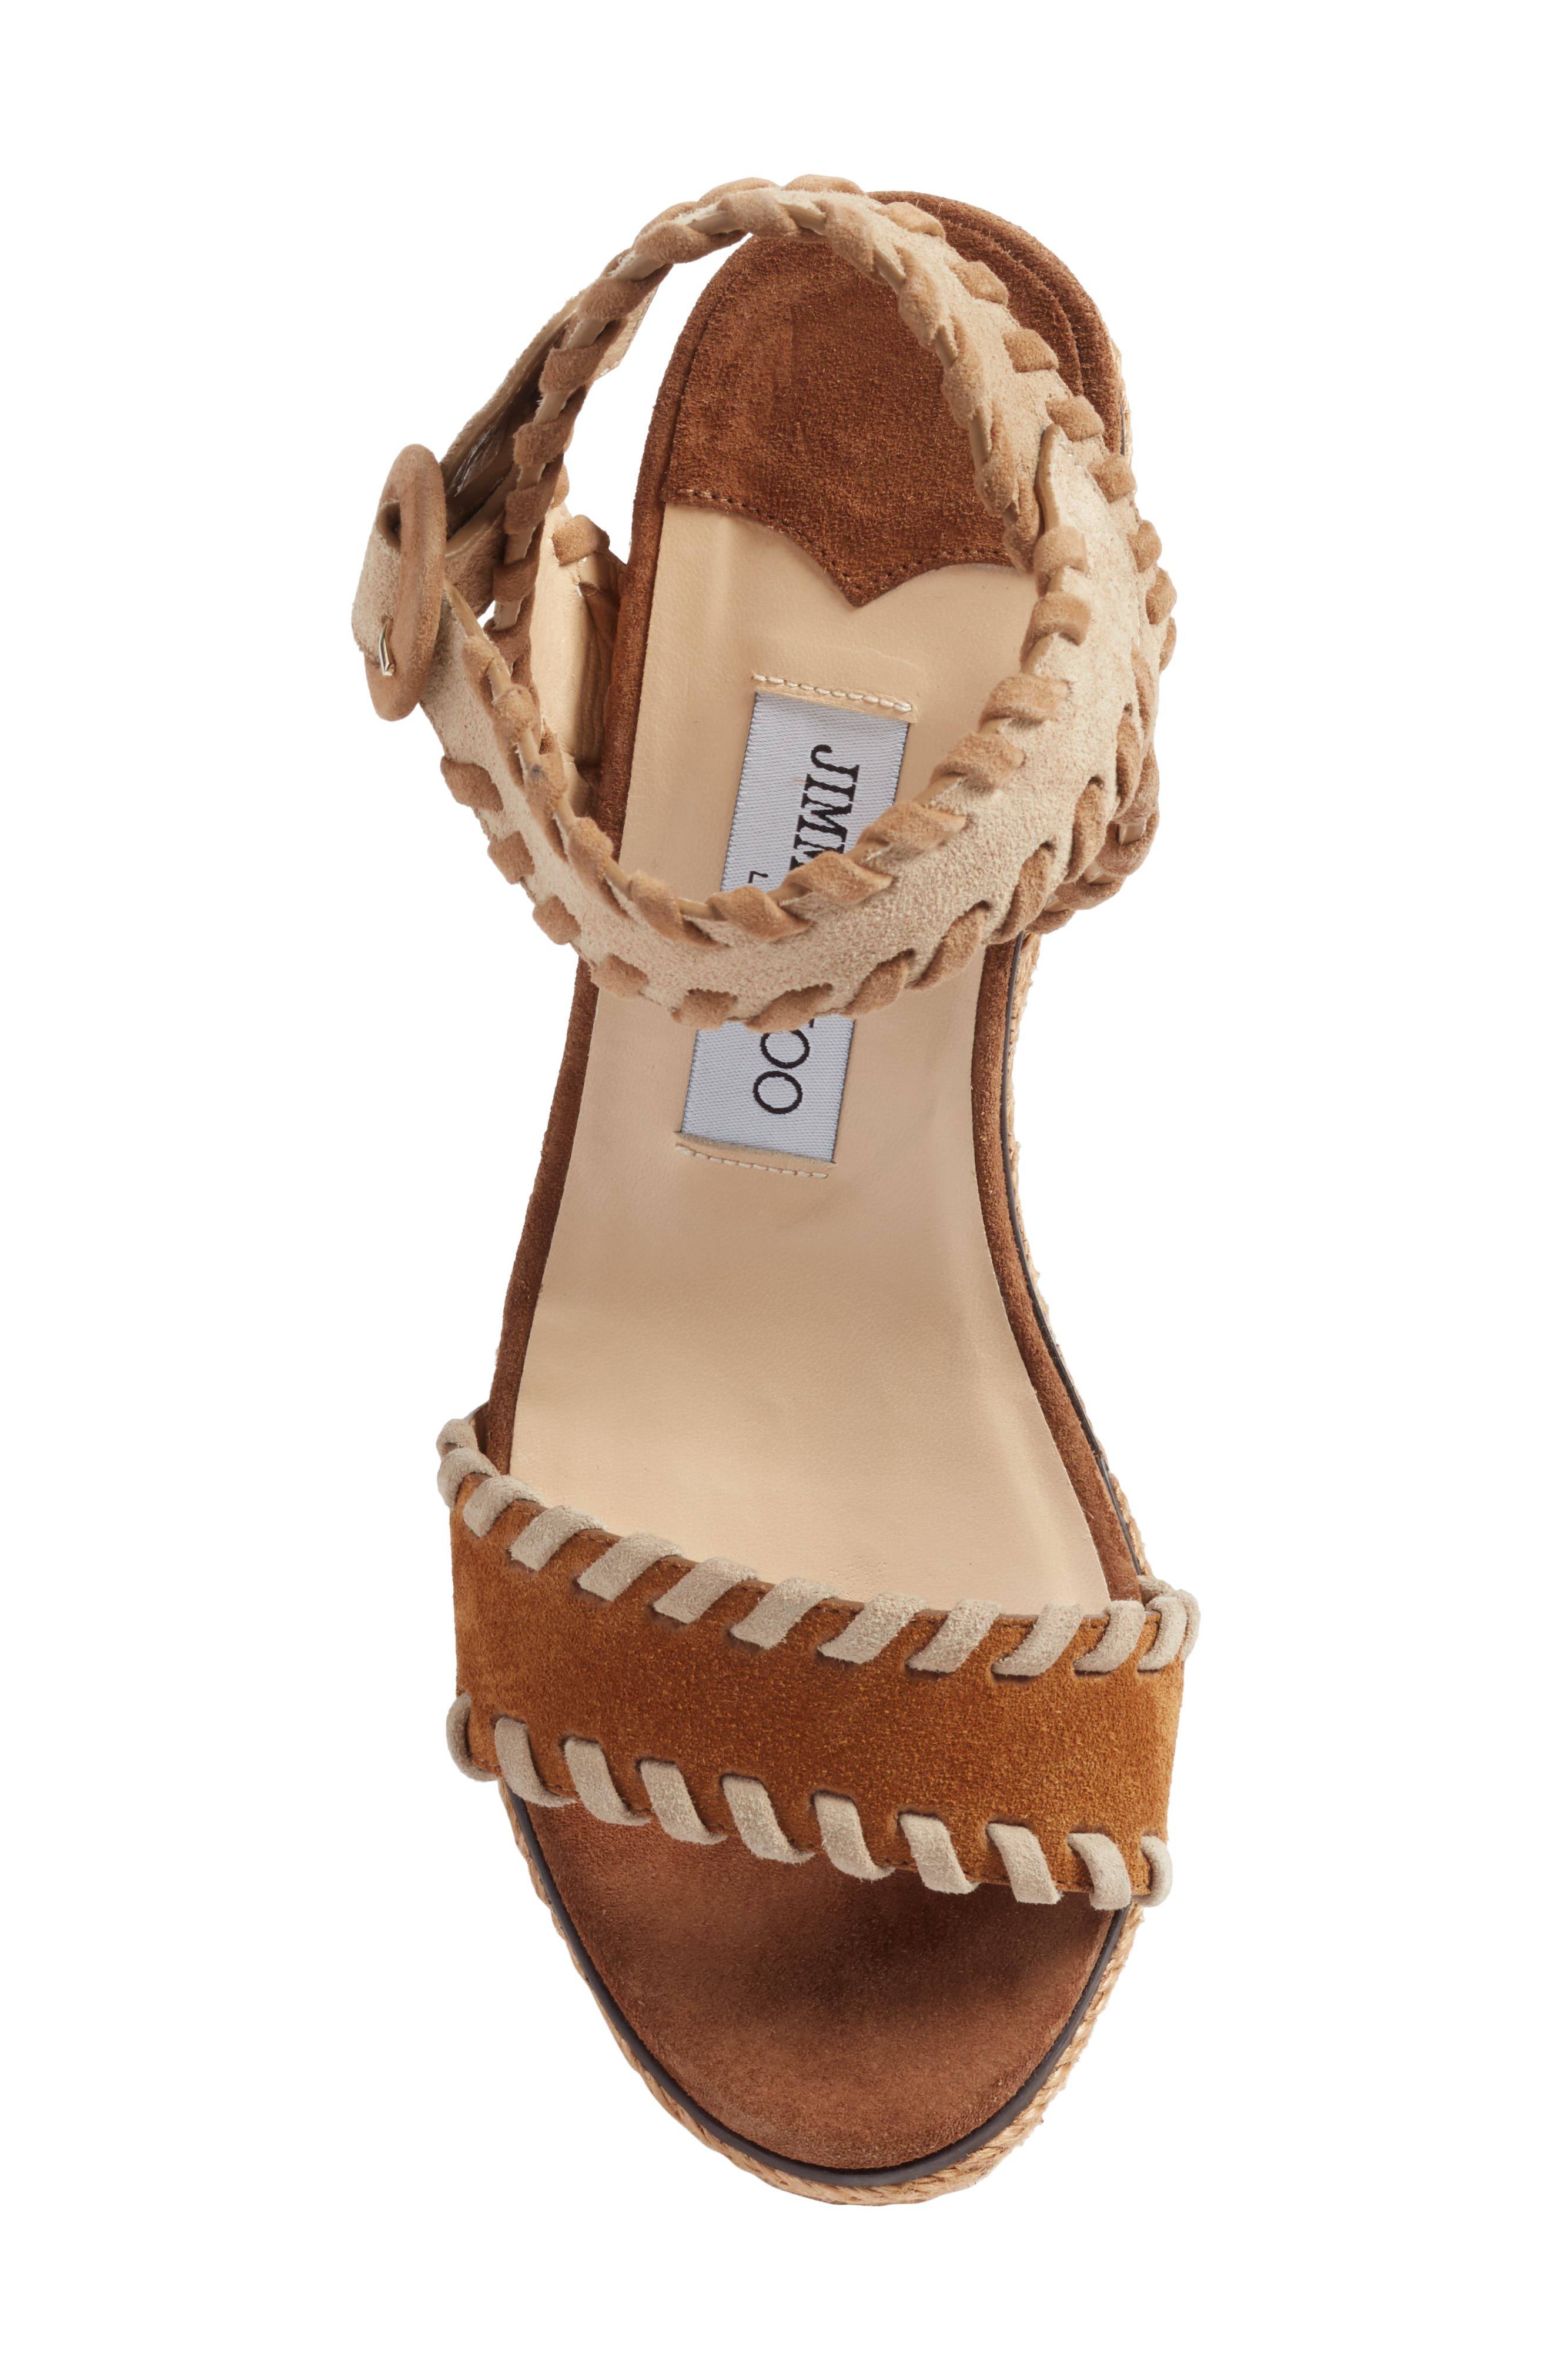 JIMMY CHOO, Abigail Whipstitch Wedge, Alternate thumbnail 5, color, NATURAL/ BROWN